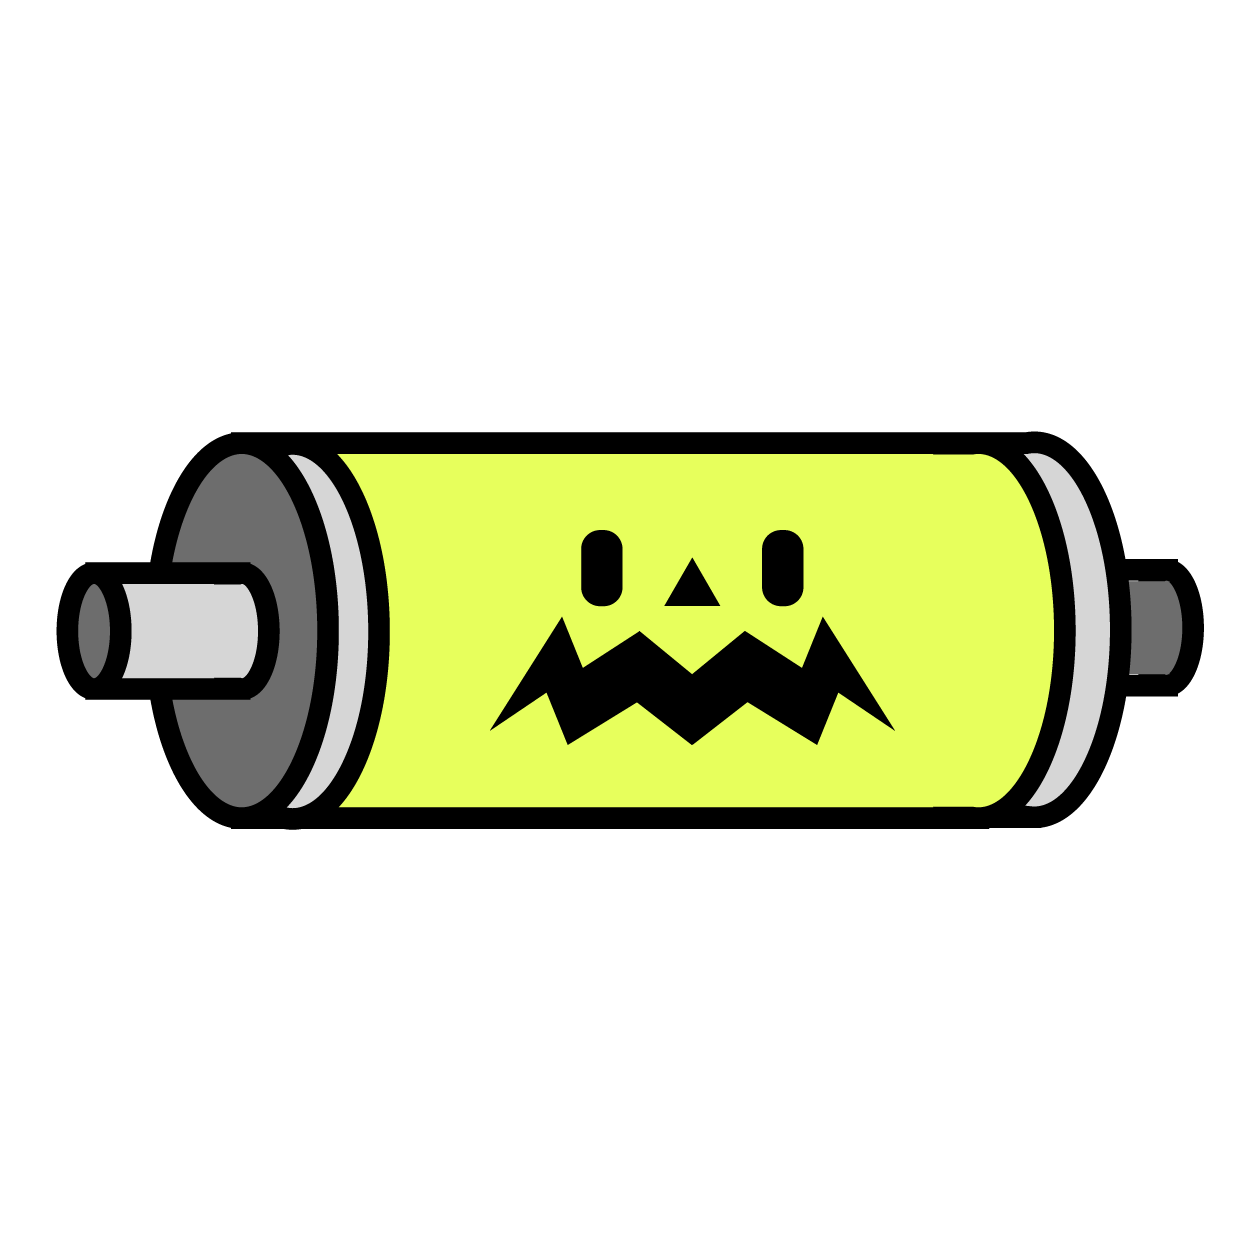 spirit-cell-battery.png